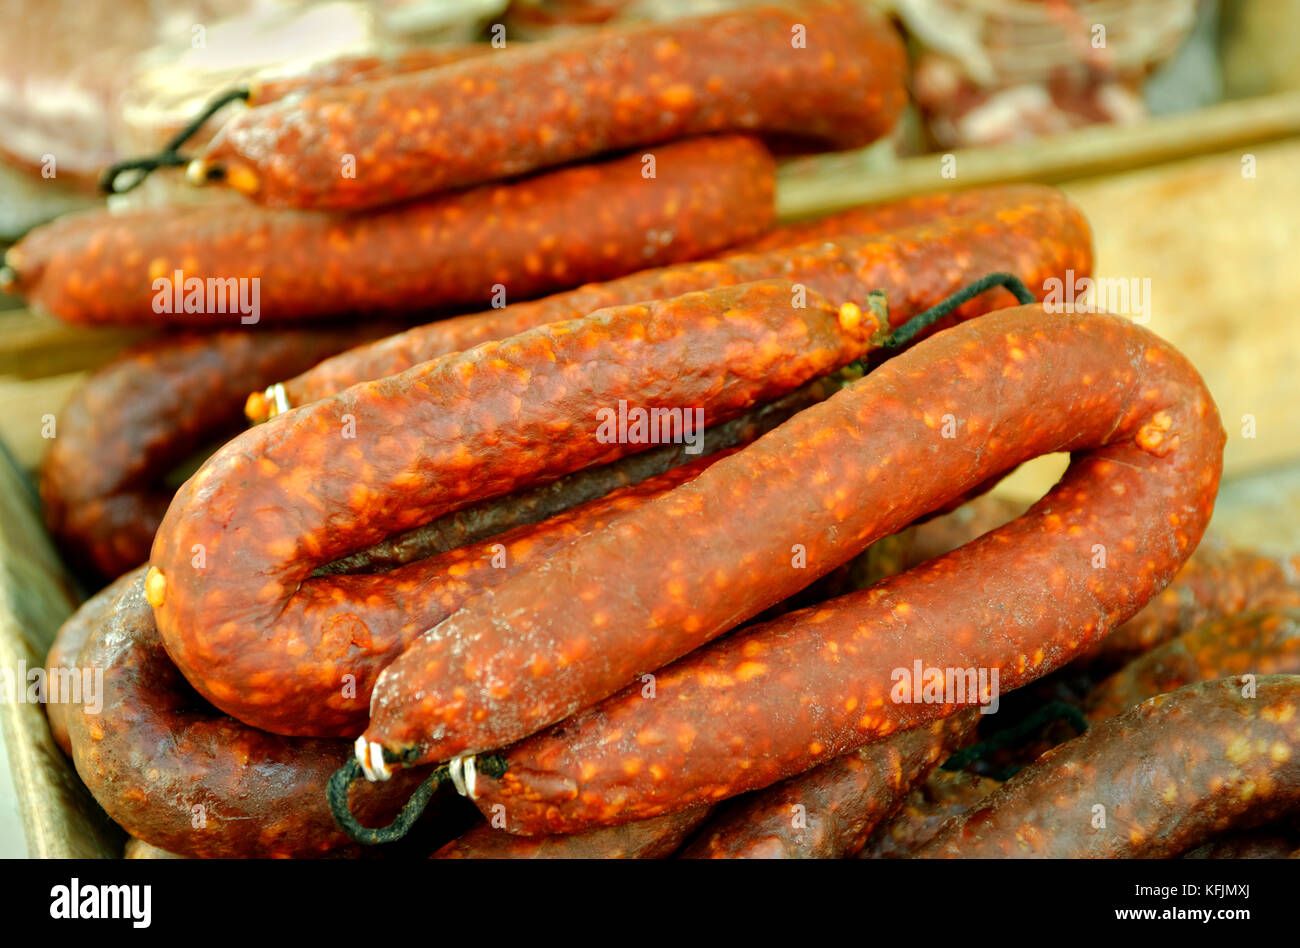 Chorizo sausage for sale on a market stall - Stock Image